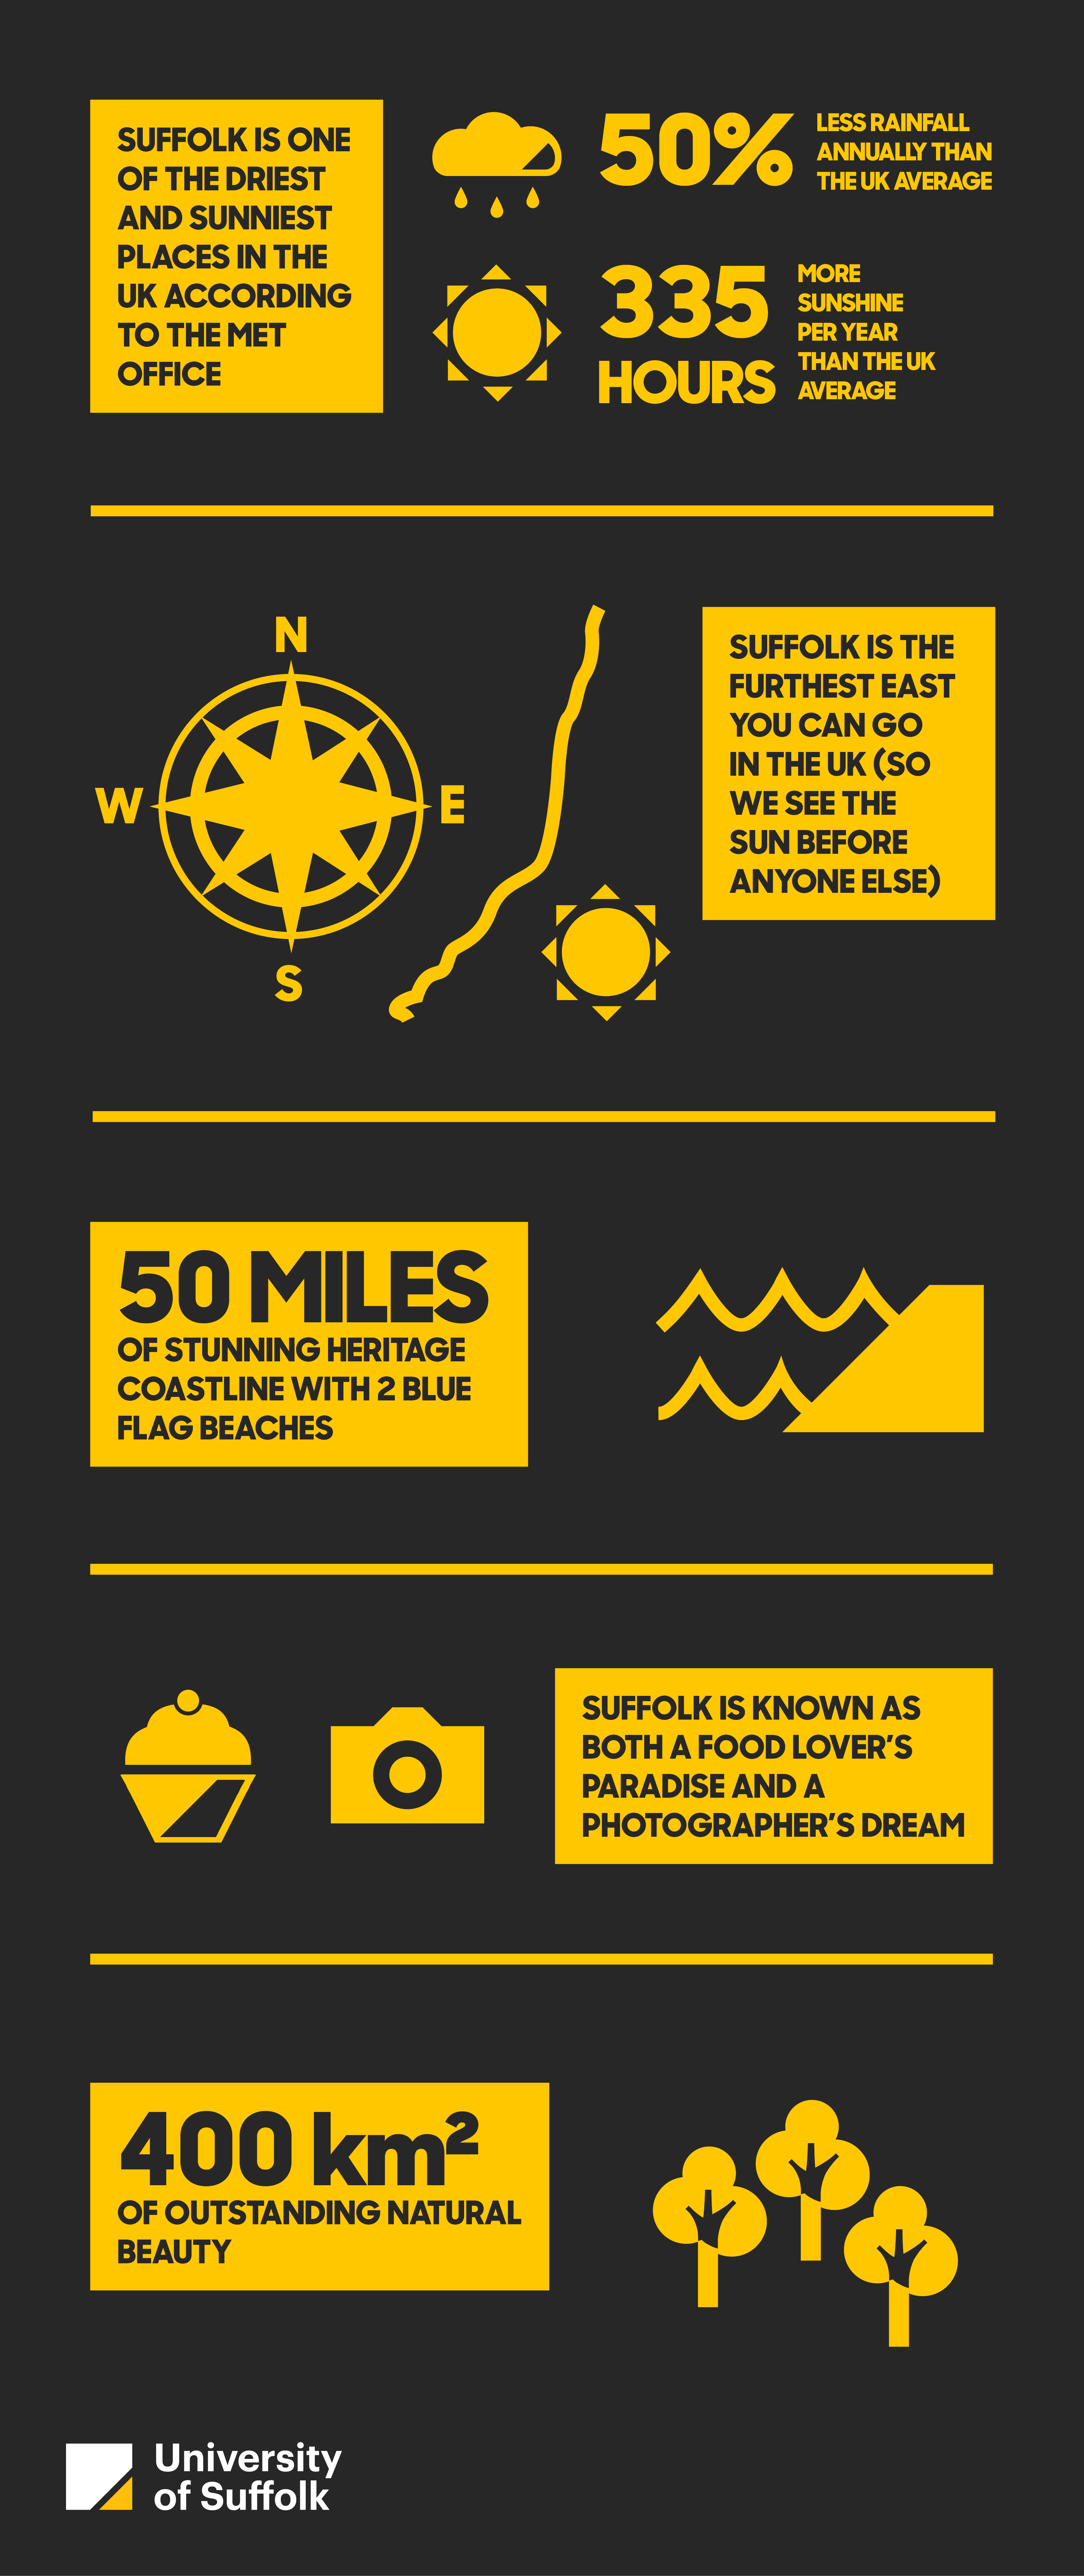 Sunny Suffolk Infographic (with logo)